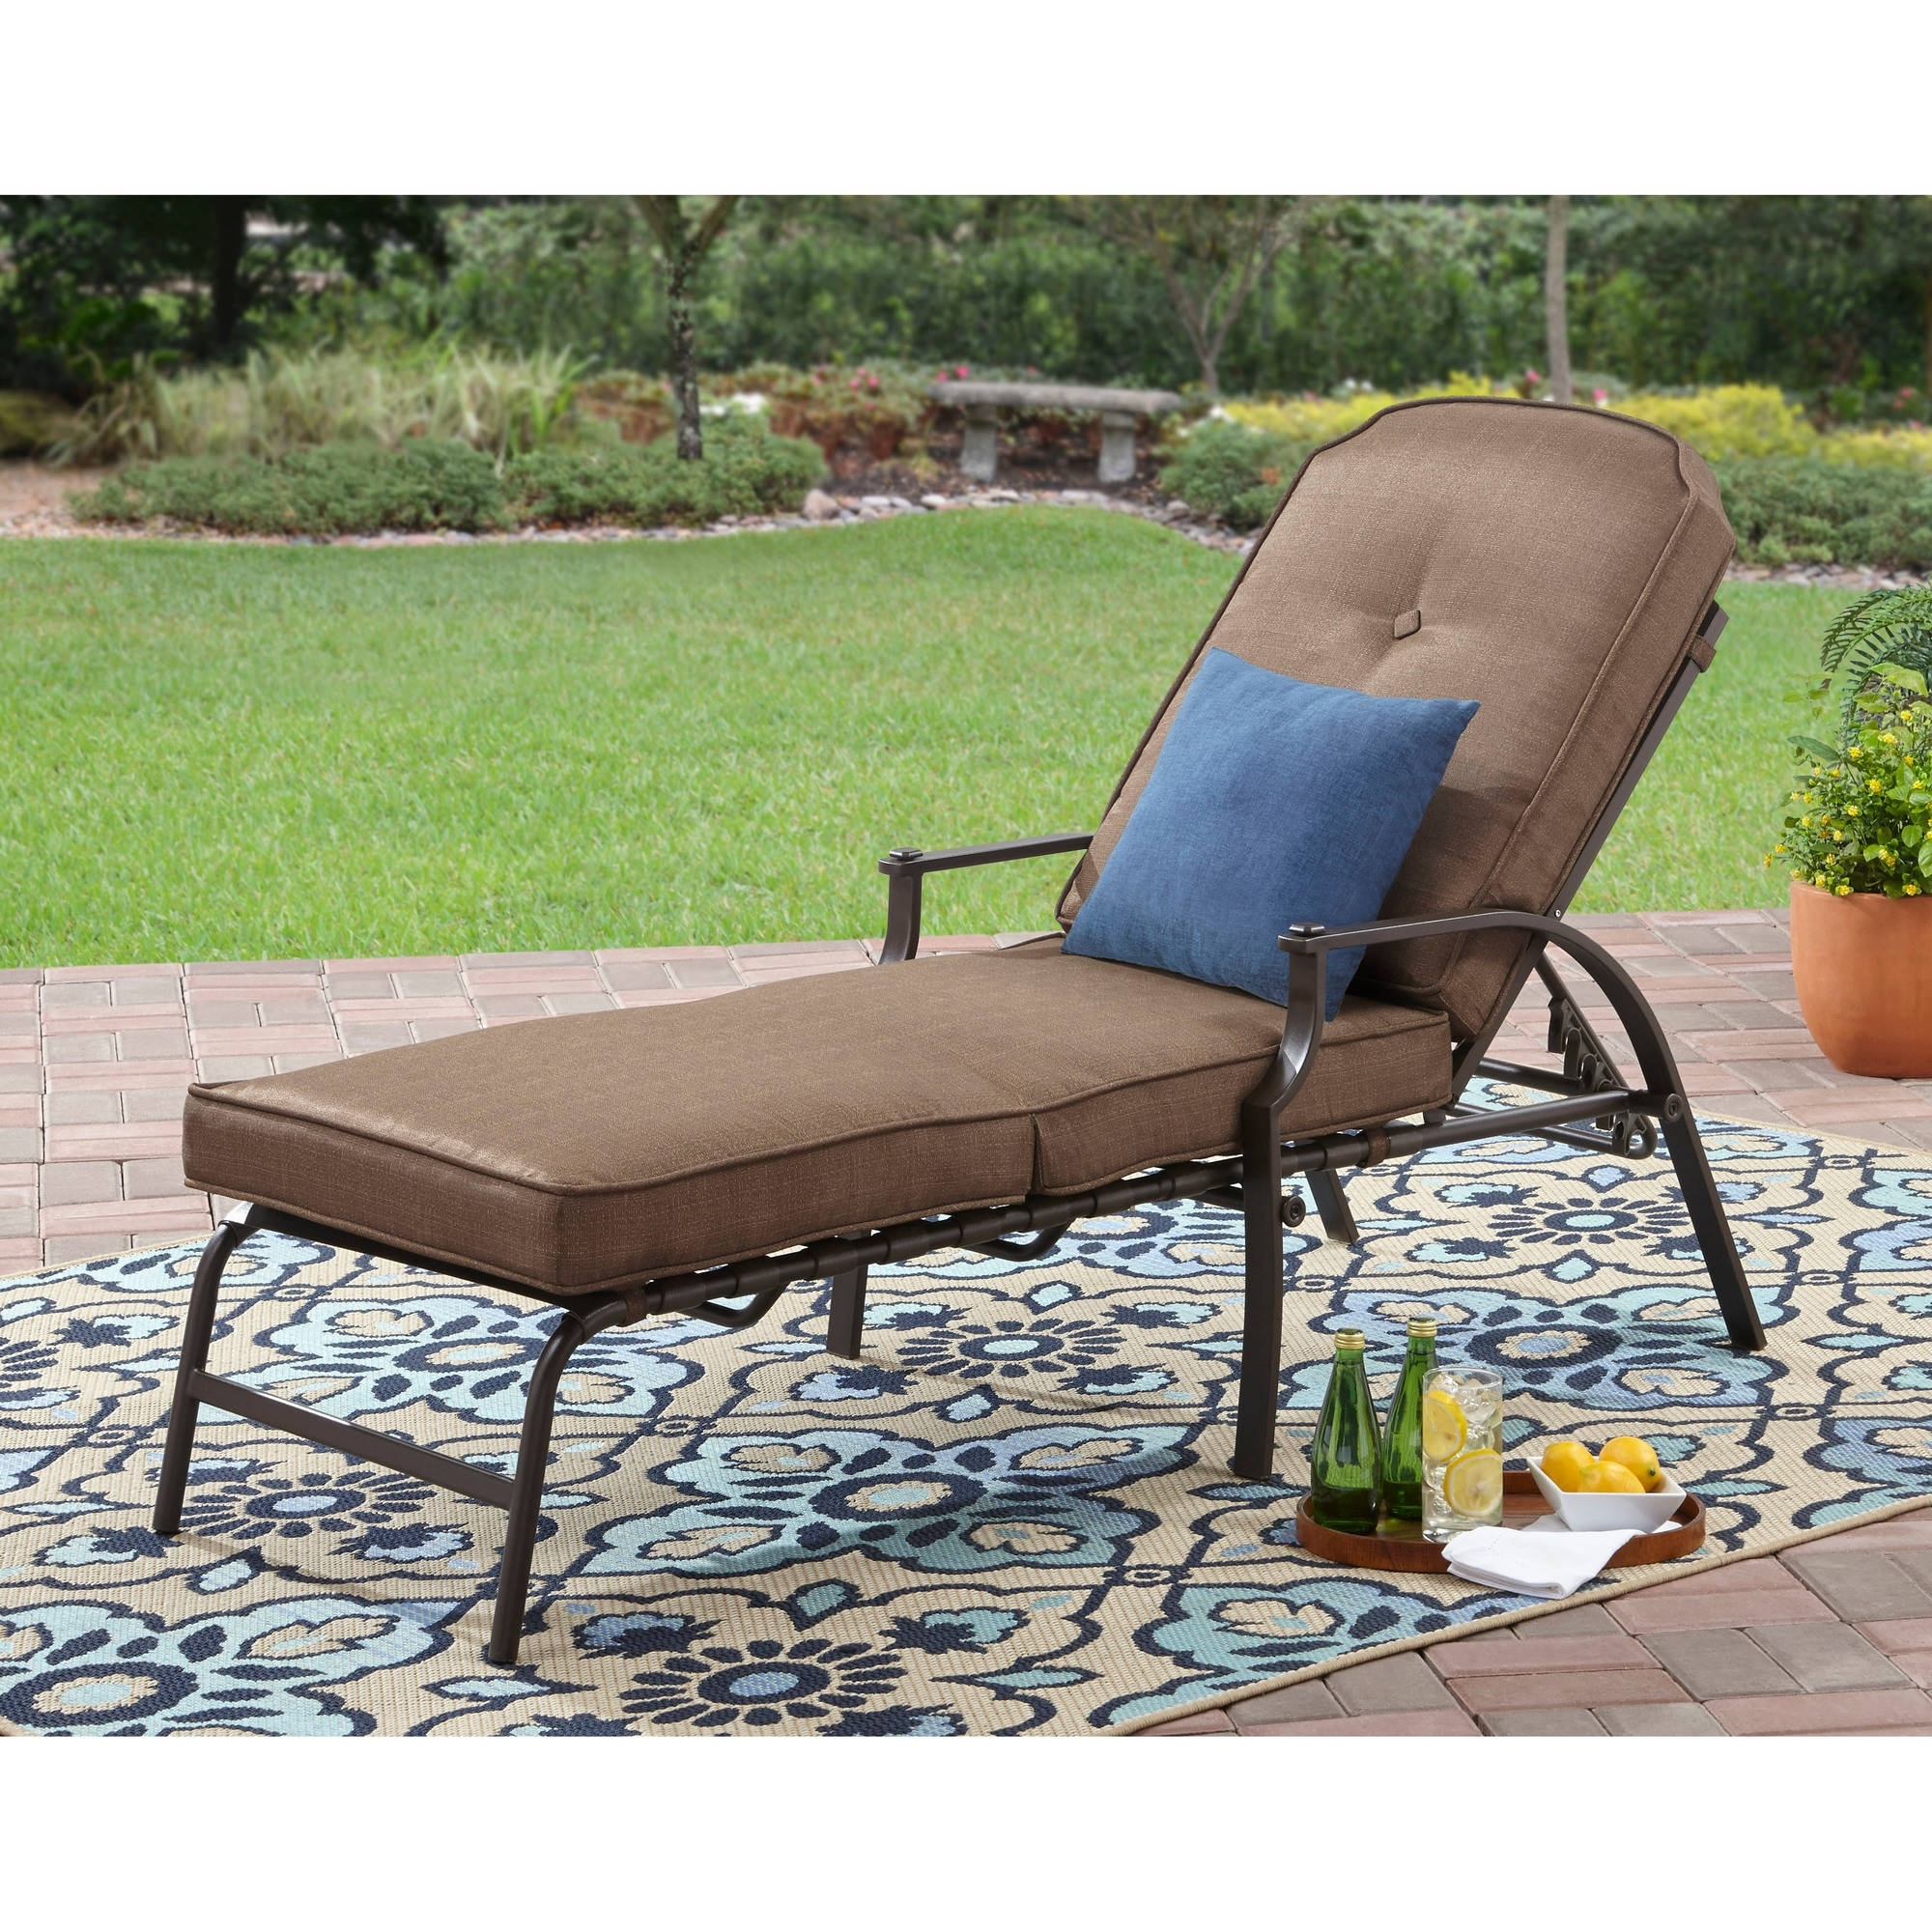 Well Liked Mainstays Wentworth Chaise Lounge – Walmart With Vinyl Outdoor Chaise Lounge Chairs (View 14 of 15)